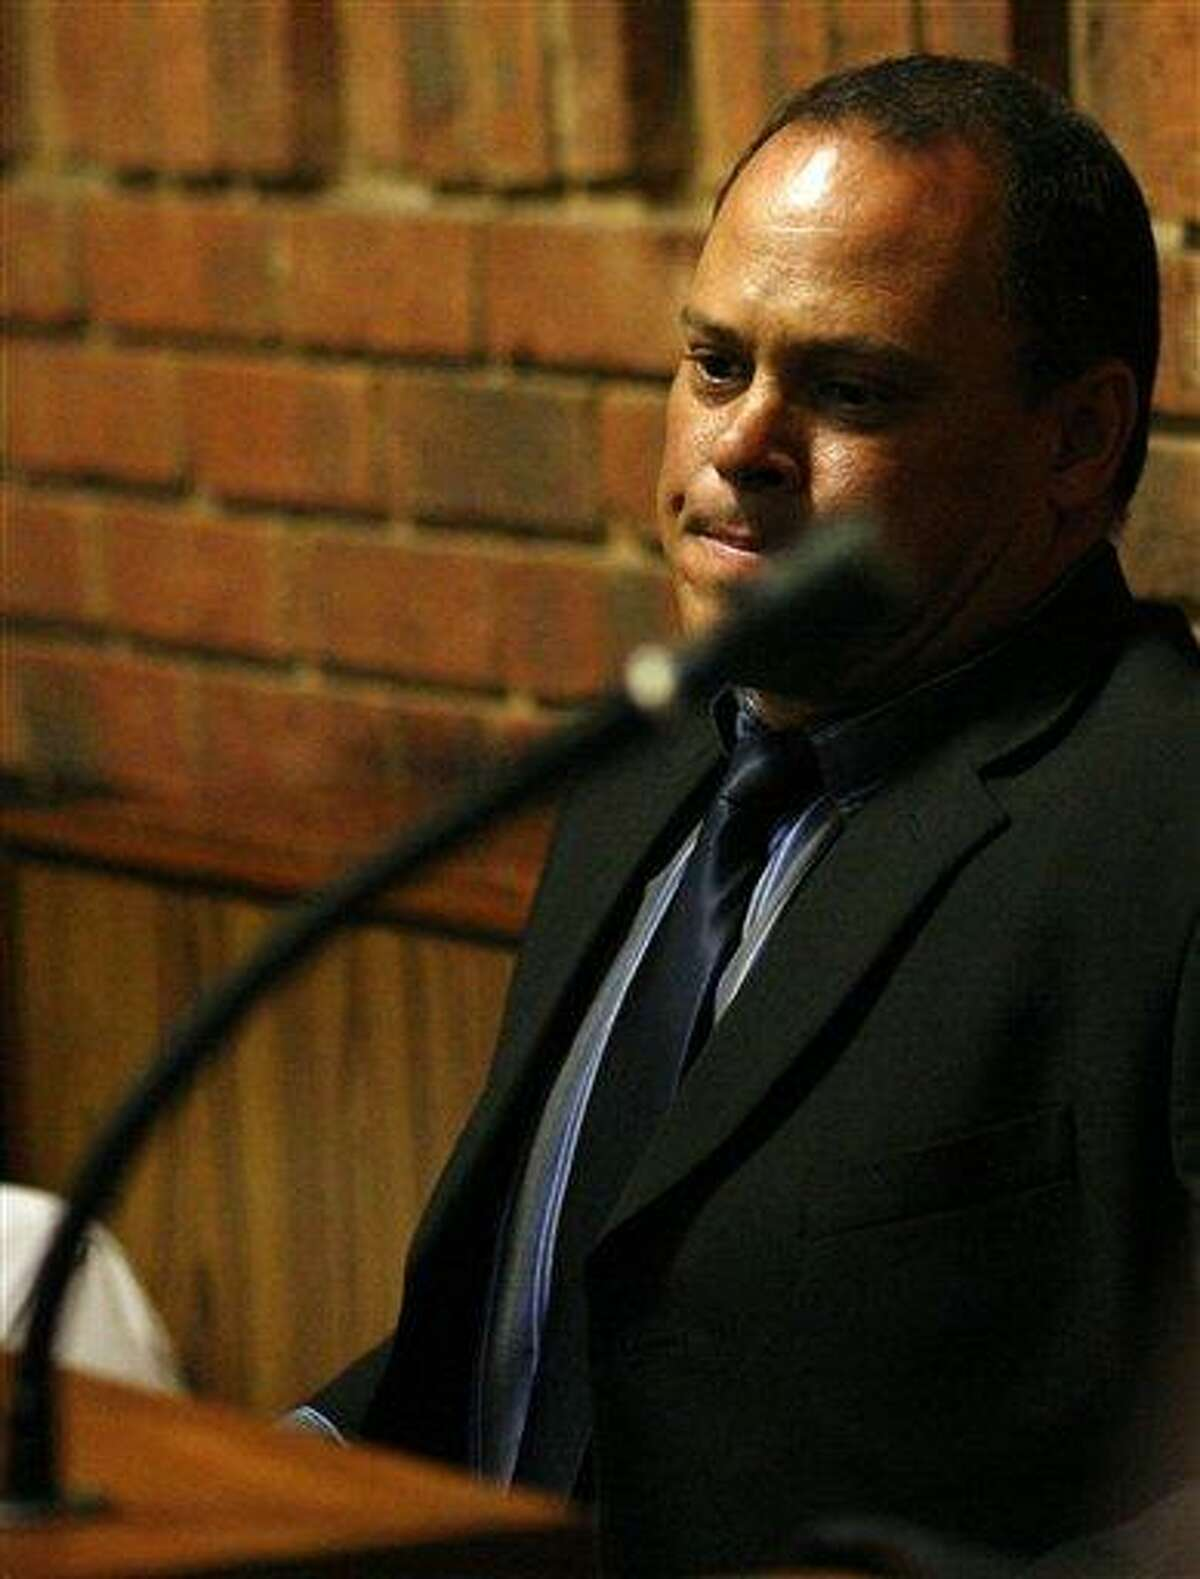 Investigating officer Hilton Botha sits inside the witness box during the bail hearing for Oscar Pistorius at the magistrate court in Pretoria, South Africa, Thursday, Feb. 21, 2013. South Africa's National Prosecuting Authority acknowledged that the timing of attempted murder charges against a police detective leading the investigation into Oscar Pistorius is